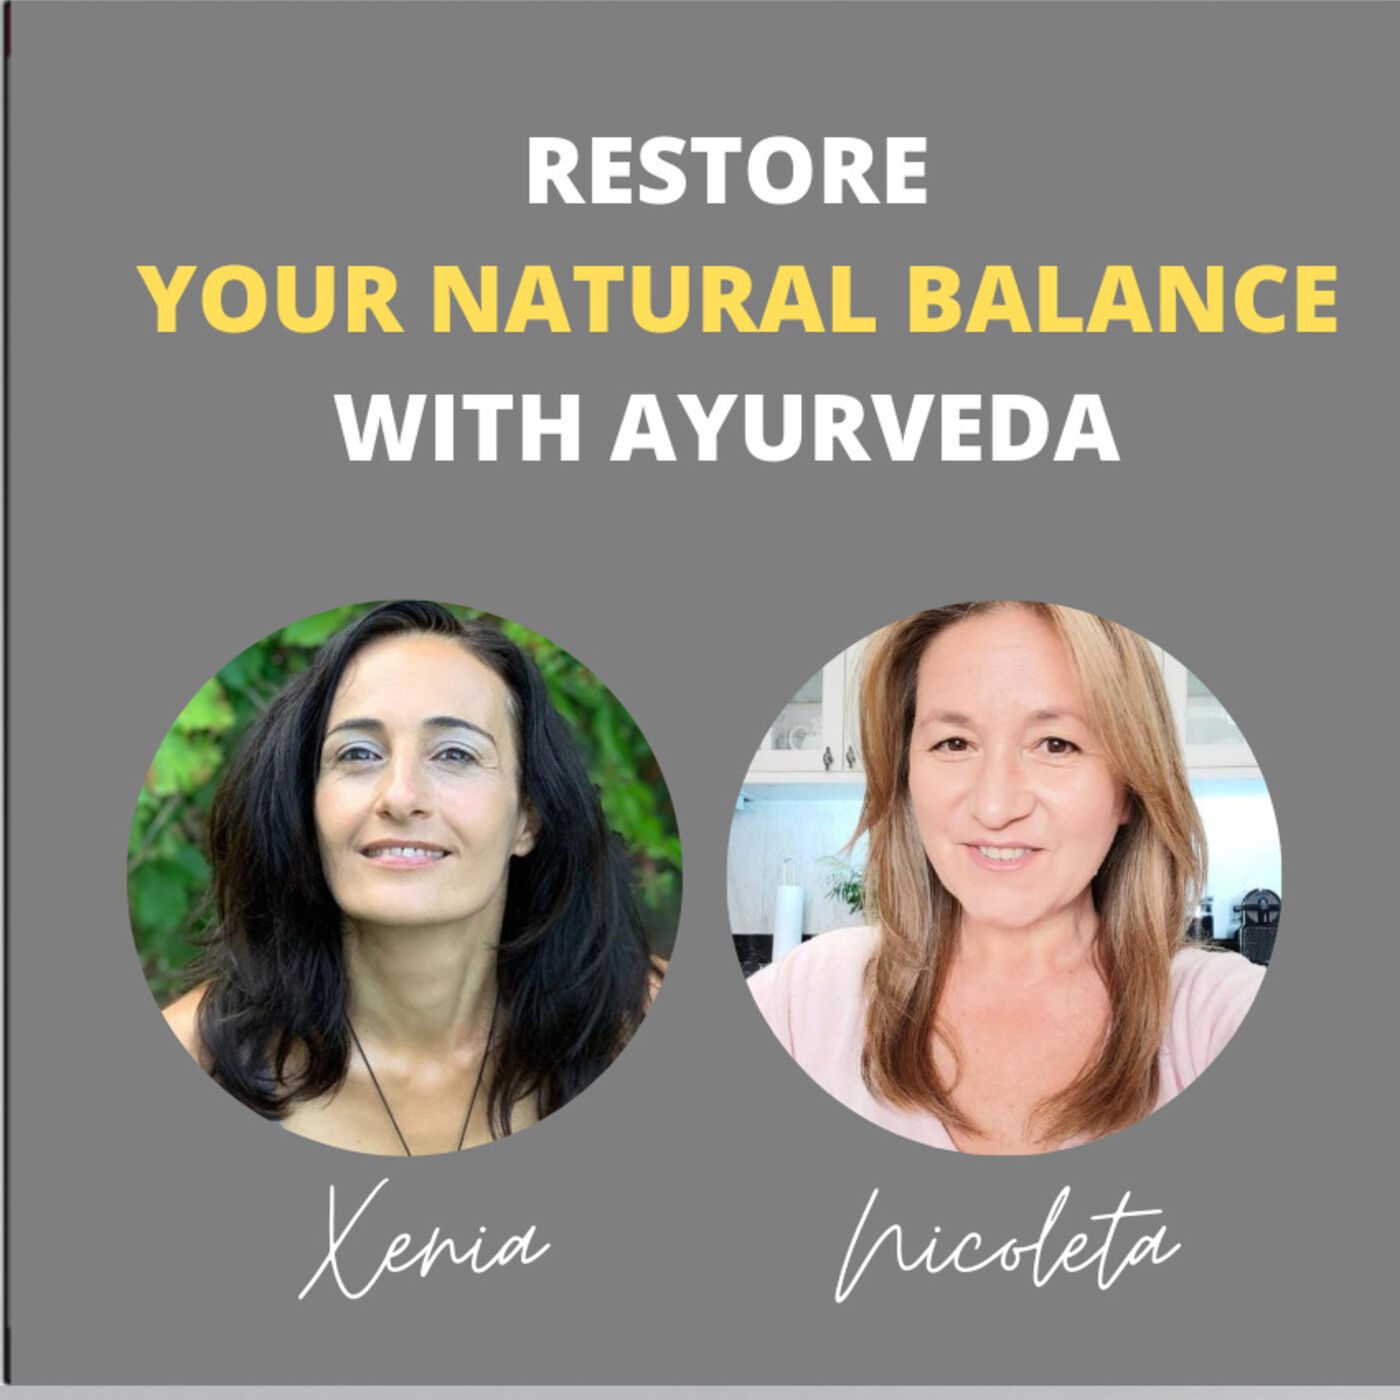 10 - Restore your natural balance with Ayurveda